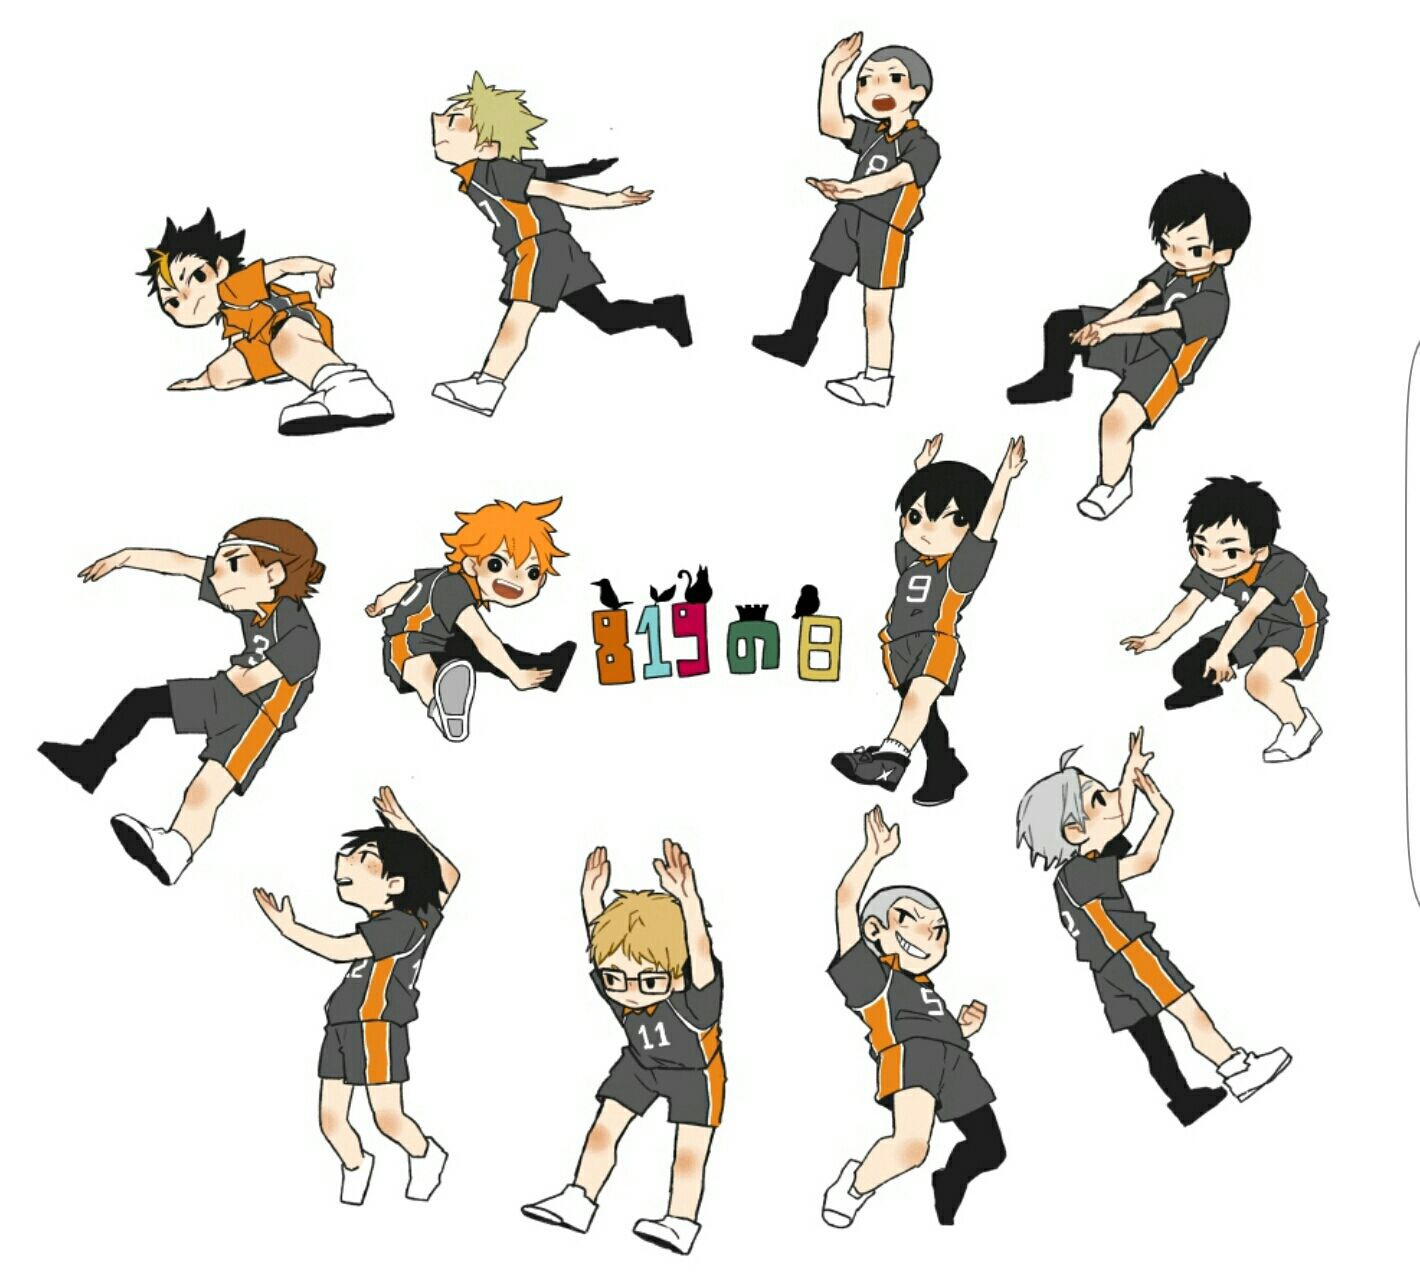 A Haikyuu Fanfic A Normal Girl With A Big Passion For Volleyball Fanfiction Fanfiction Amreading Books Wattpad Haikyuu Tsundere Readers